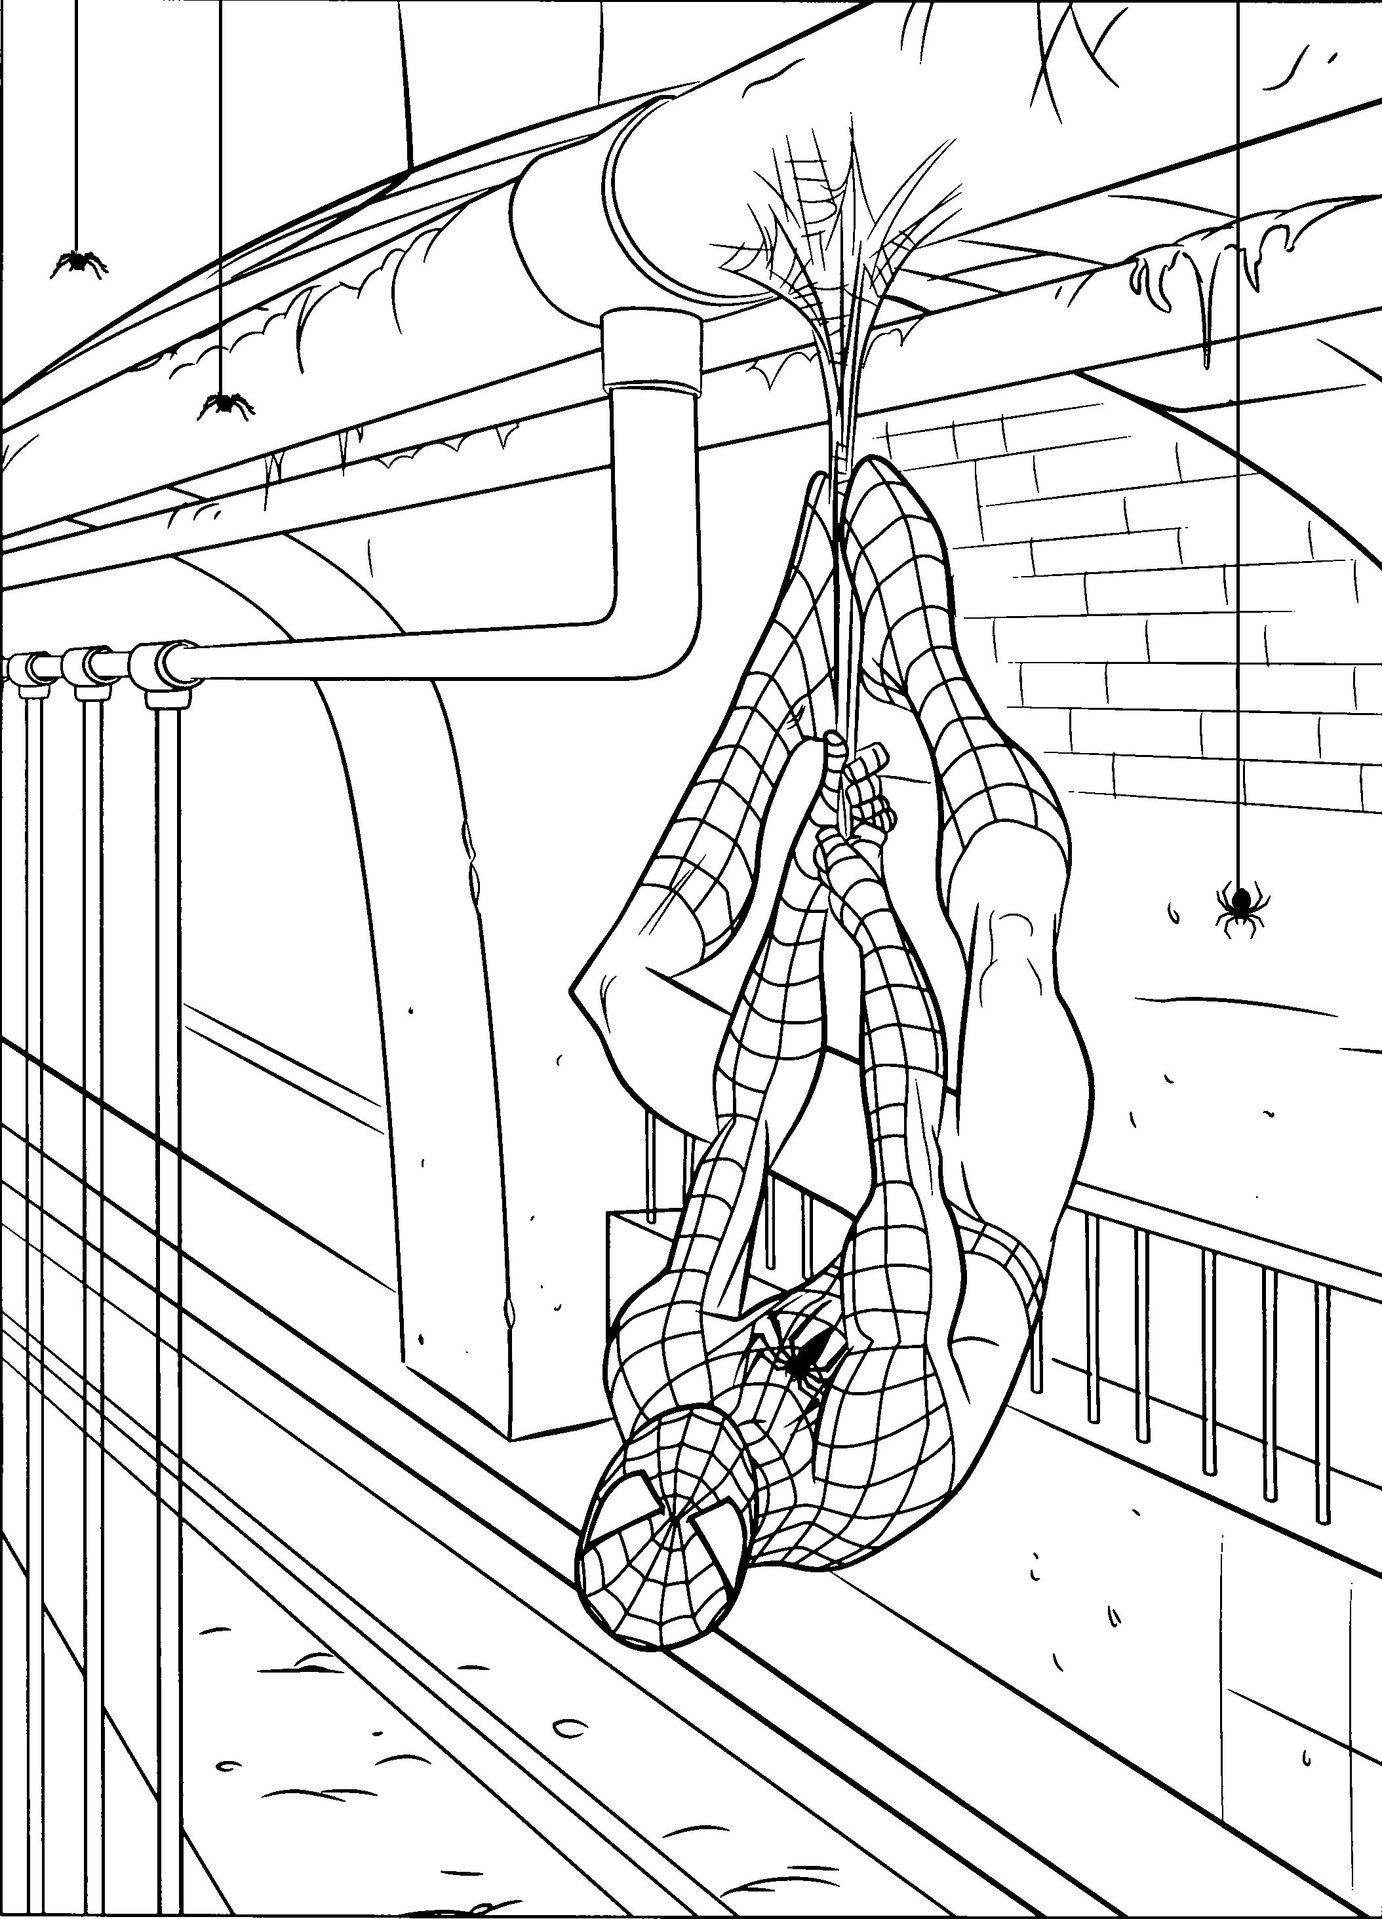 spiderman web coloring pages 20 spiderman coloring pages jpg psd ai illustrator web pages spiderman coloring